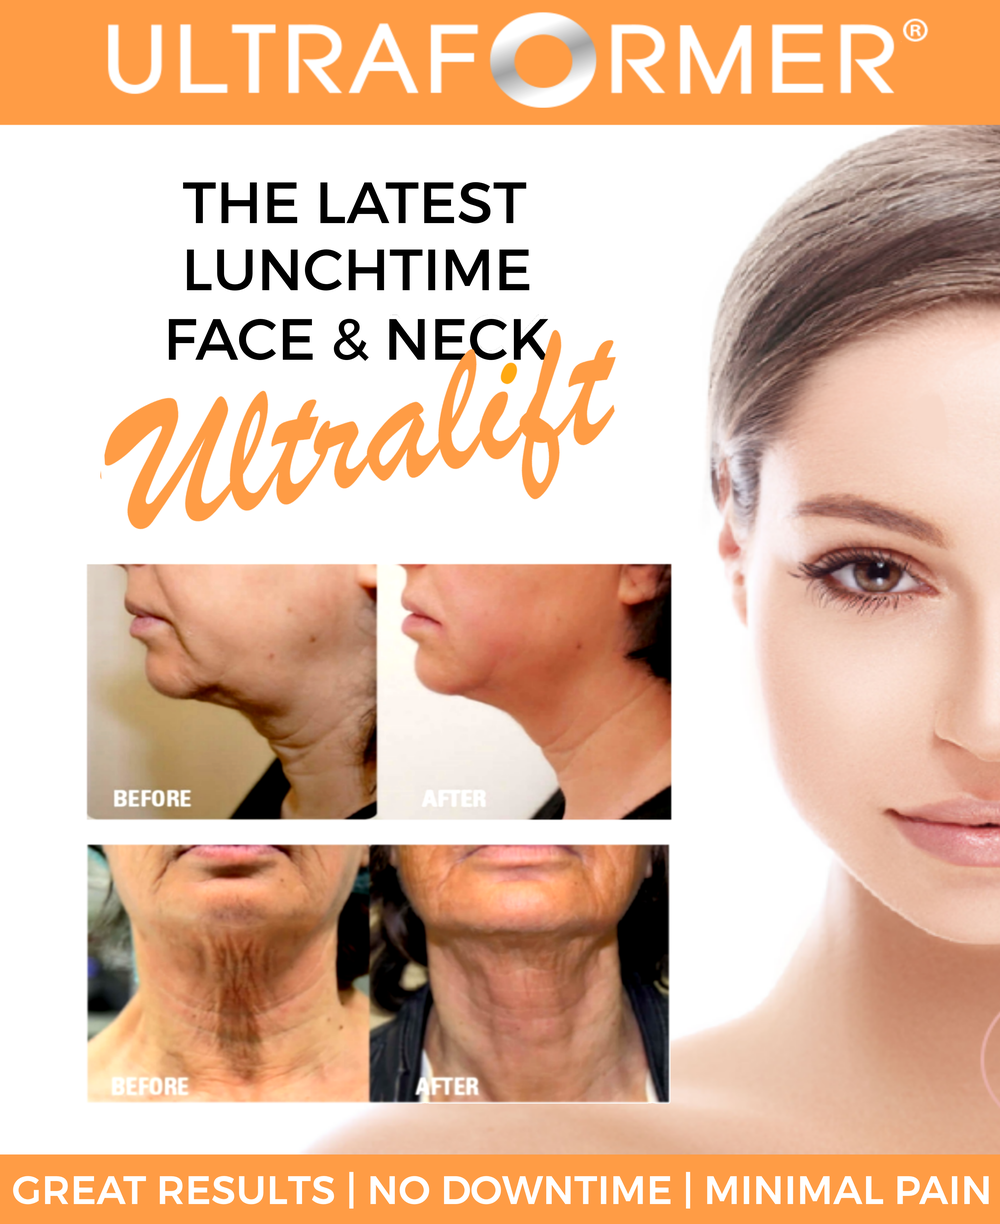 Current Ultraformer special $1950 (3800 RRP) to the face and neck.